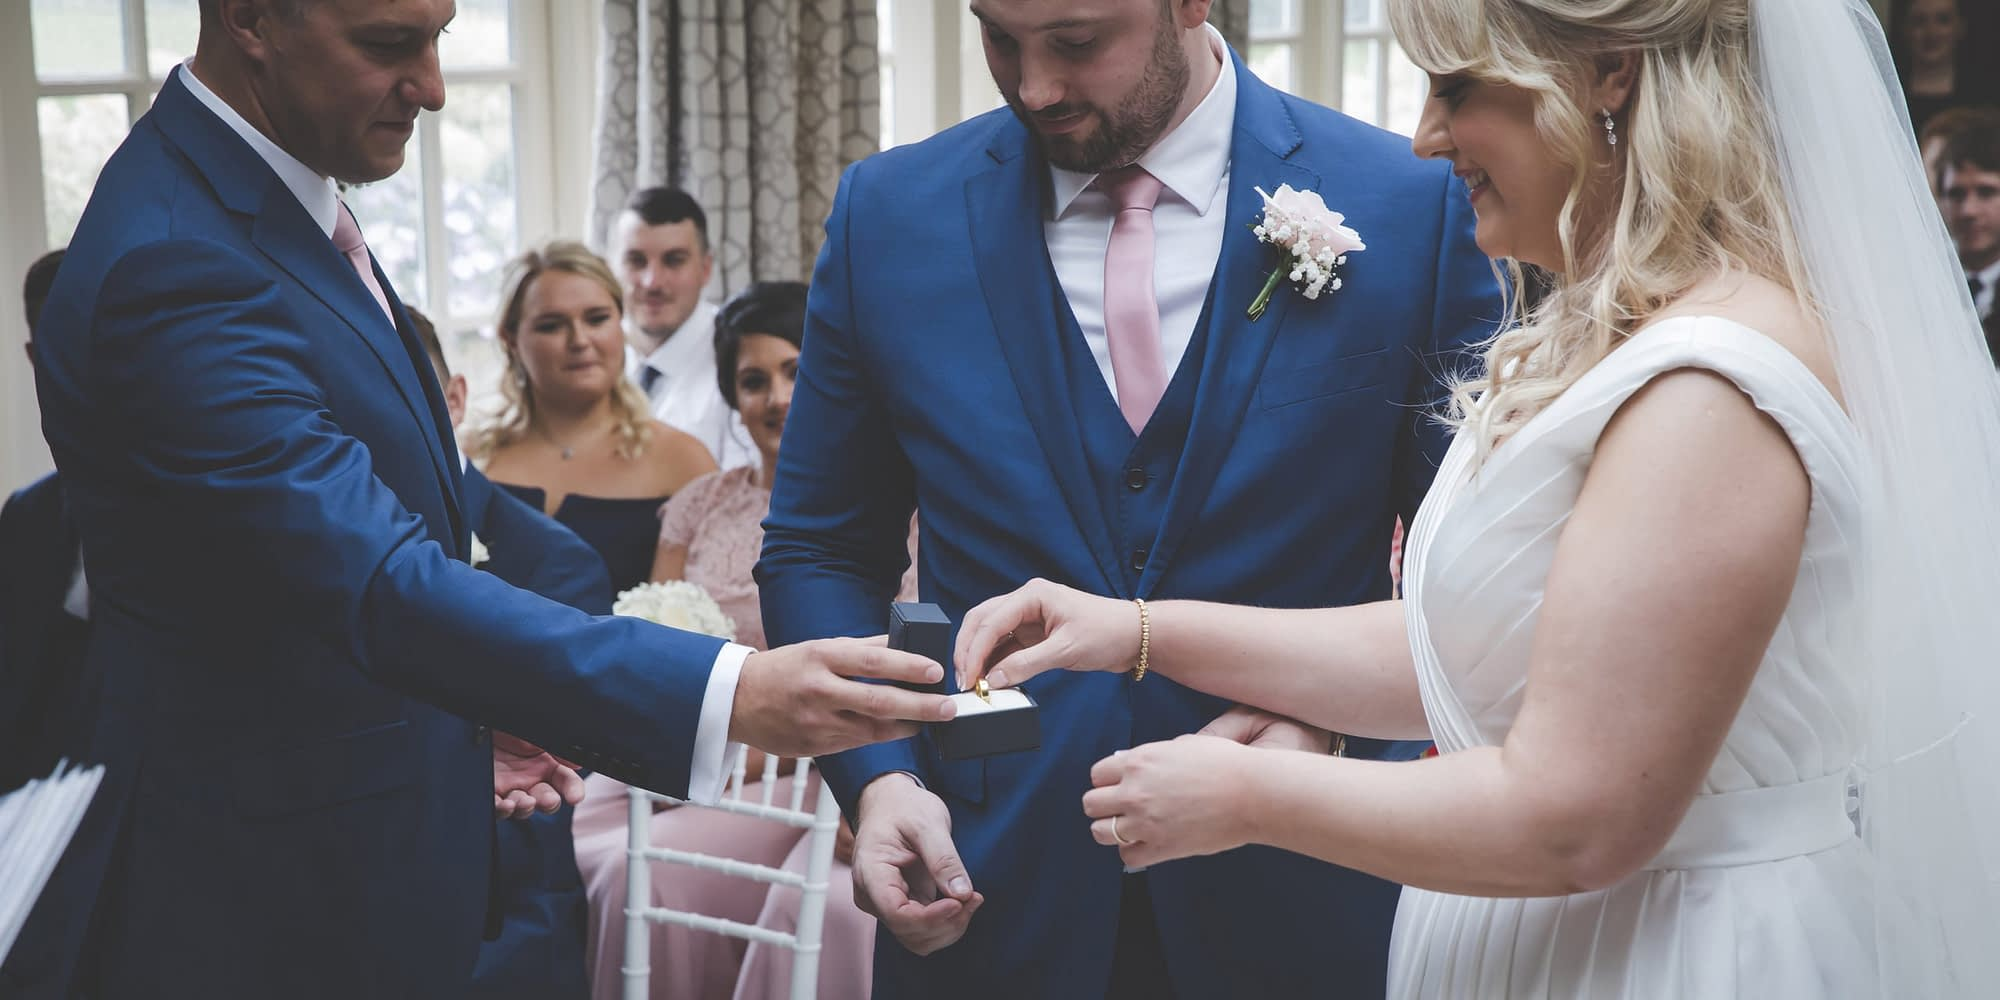 bride takes groom's ring from best man